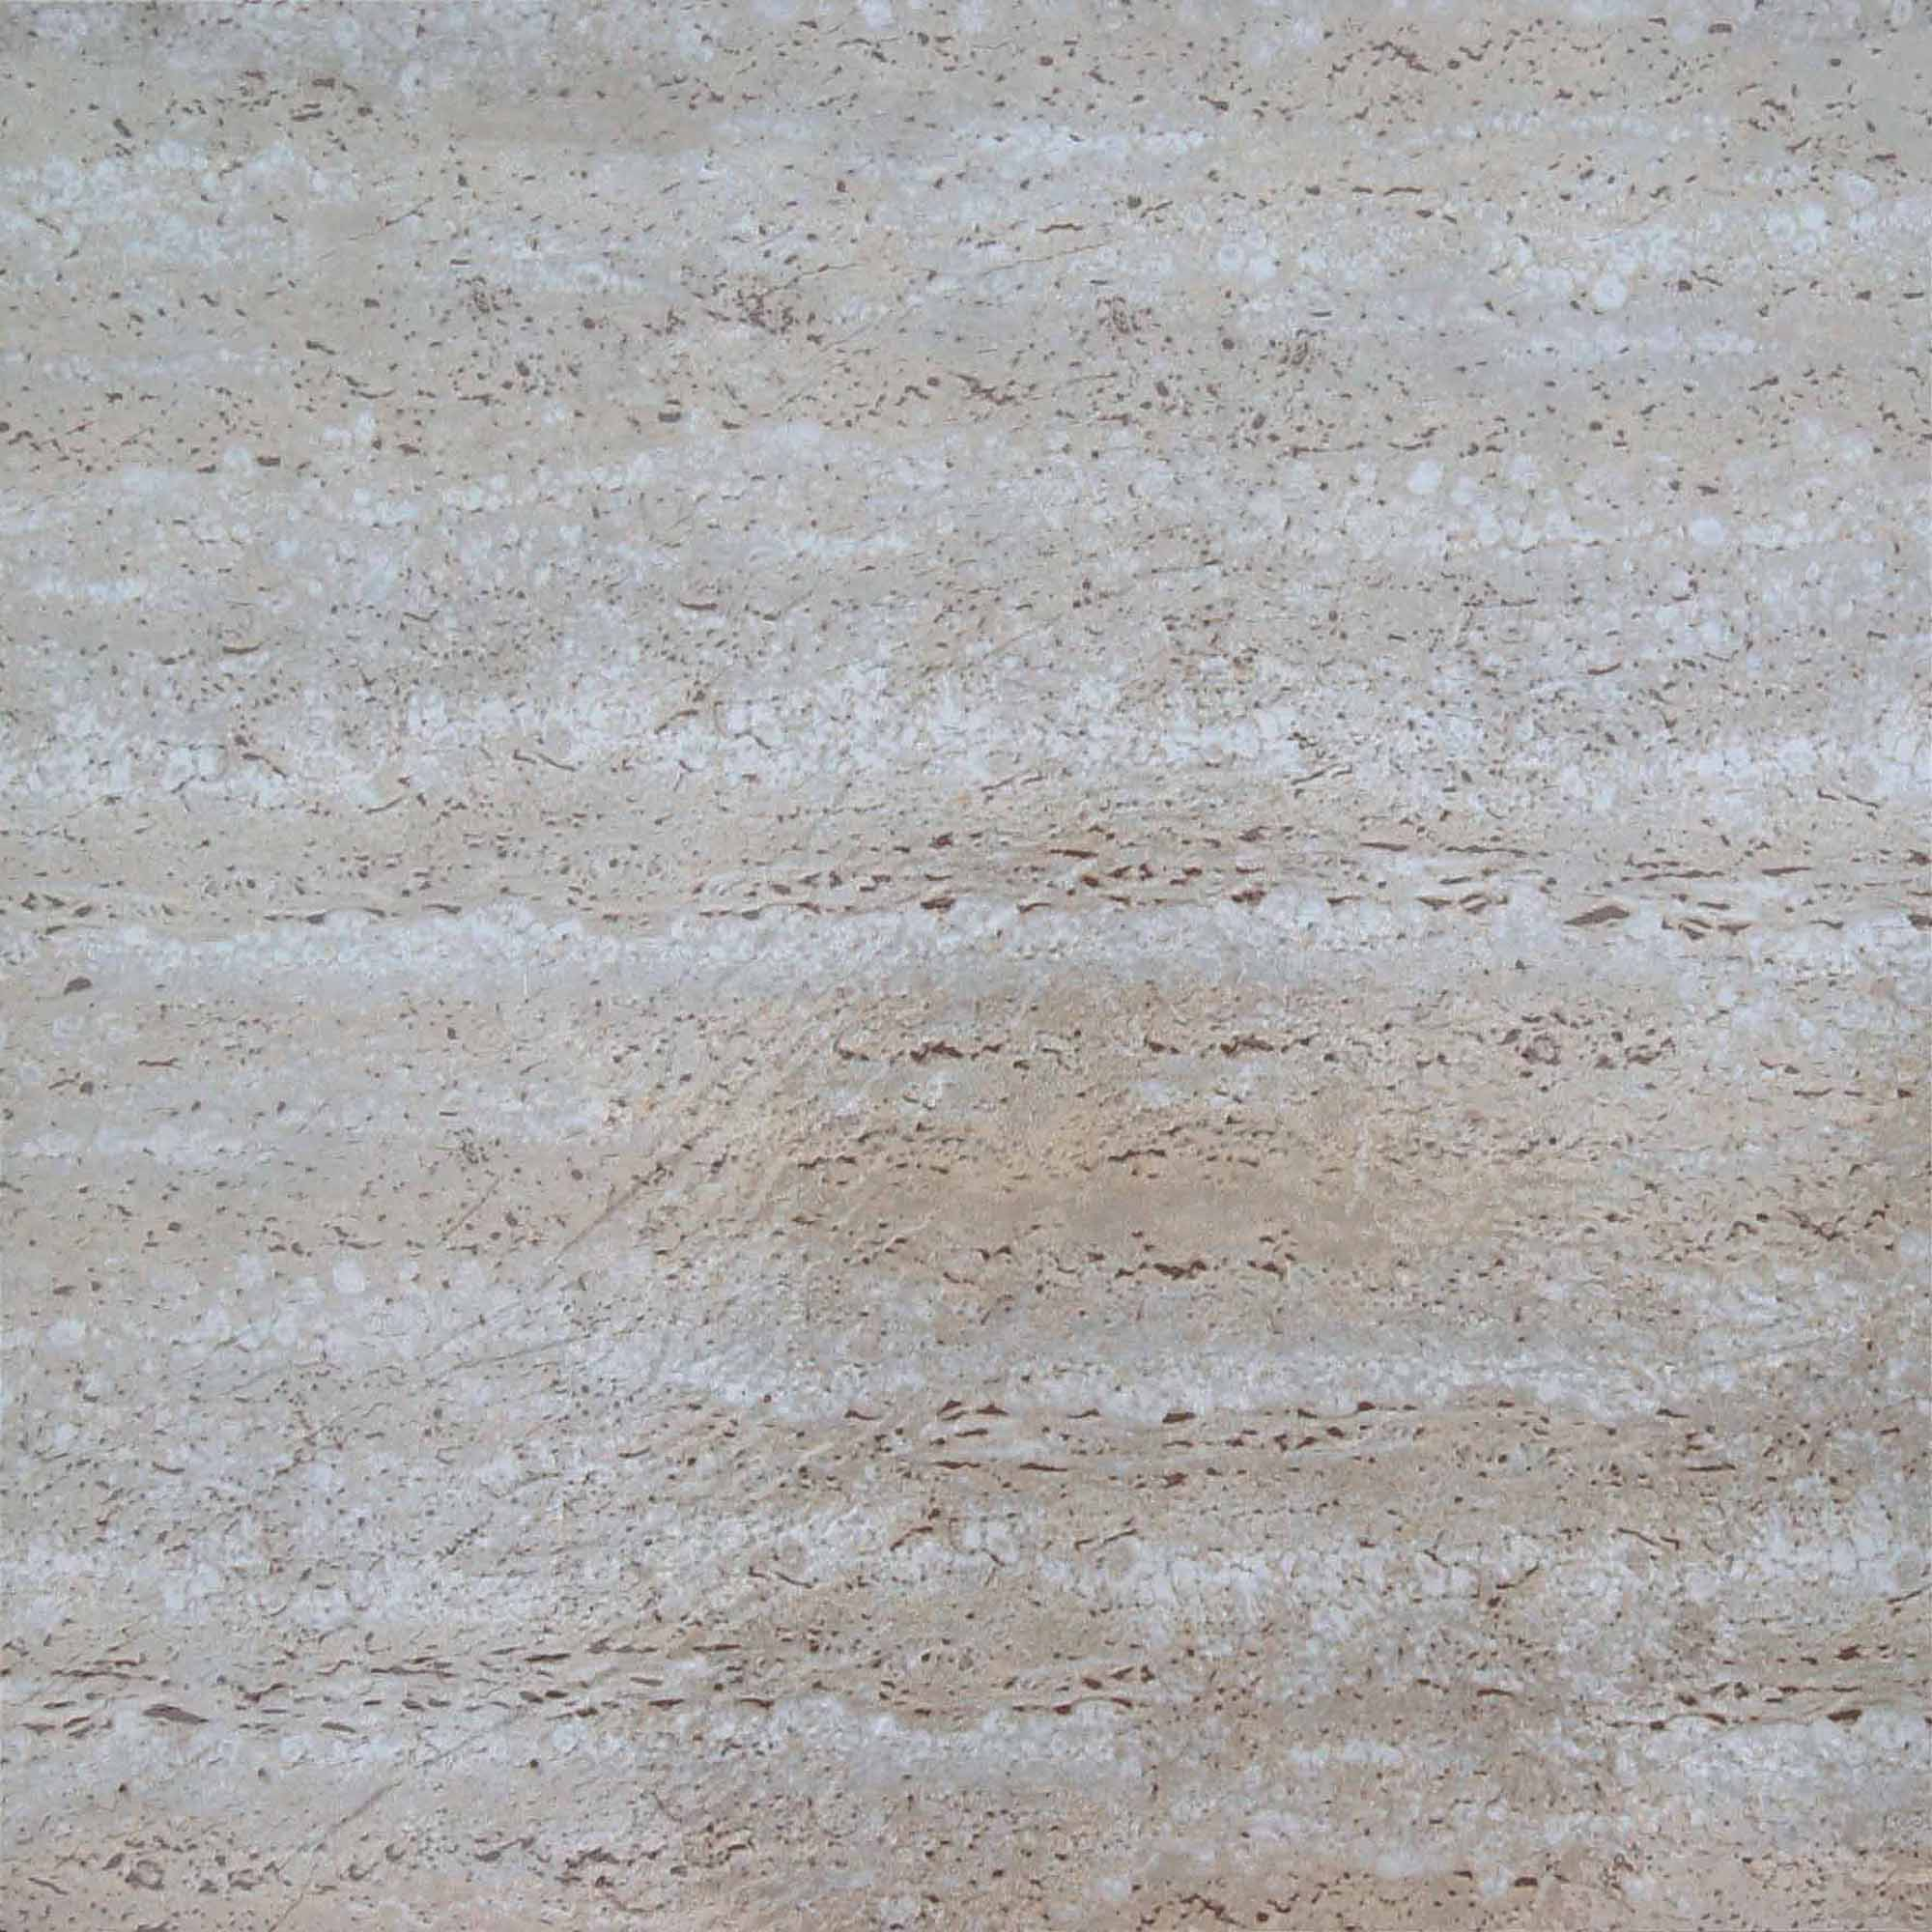 NEXUS Travatine Marble 12x12 Self Adhesive Vinyl Floor Tile - 20 Tiles/20 Sq.Ft.